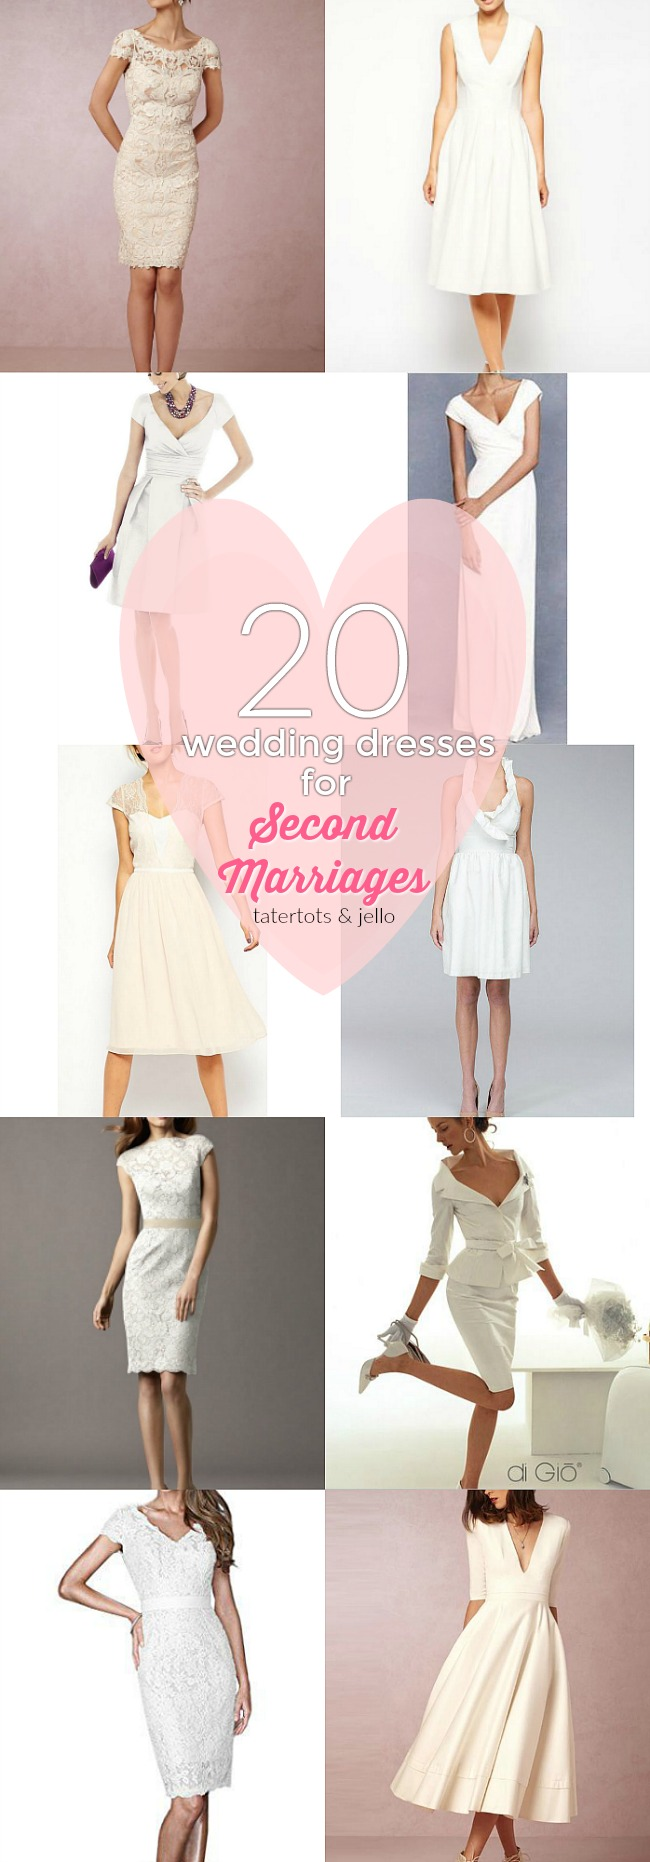 Wedding Dresses Second Marriage 95 Fabulous  wedding dresses for